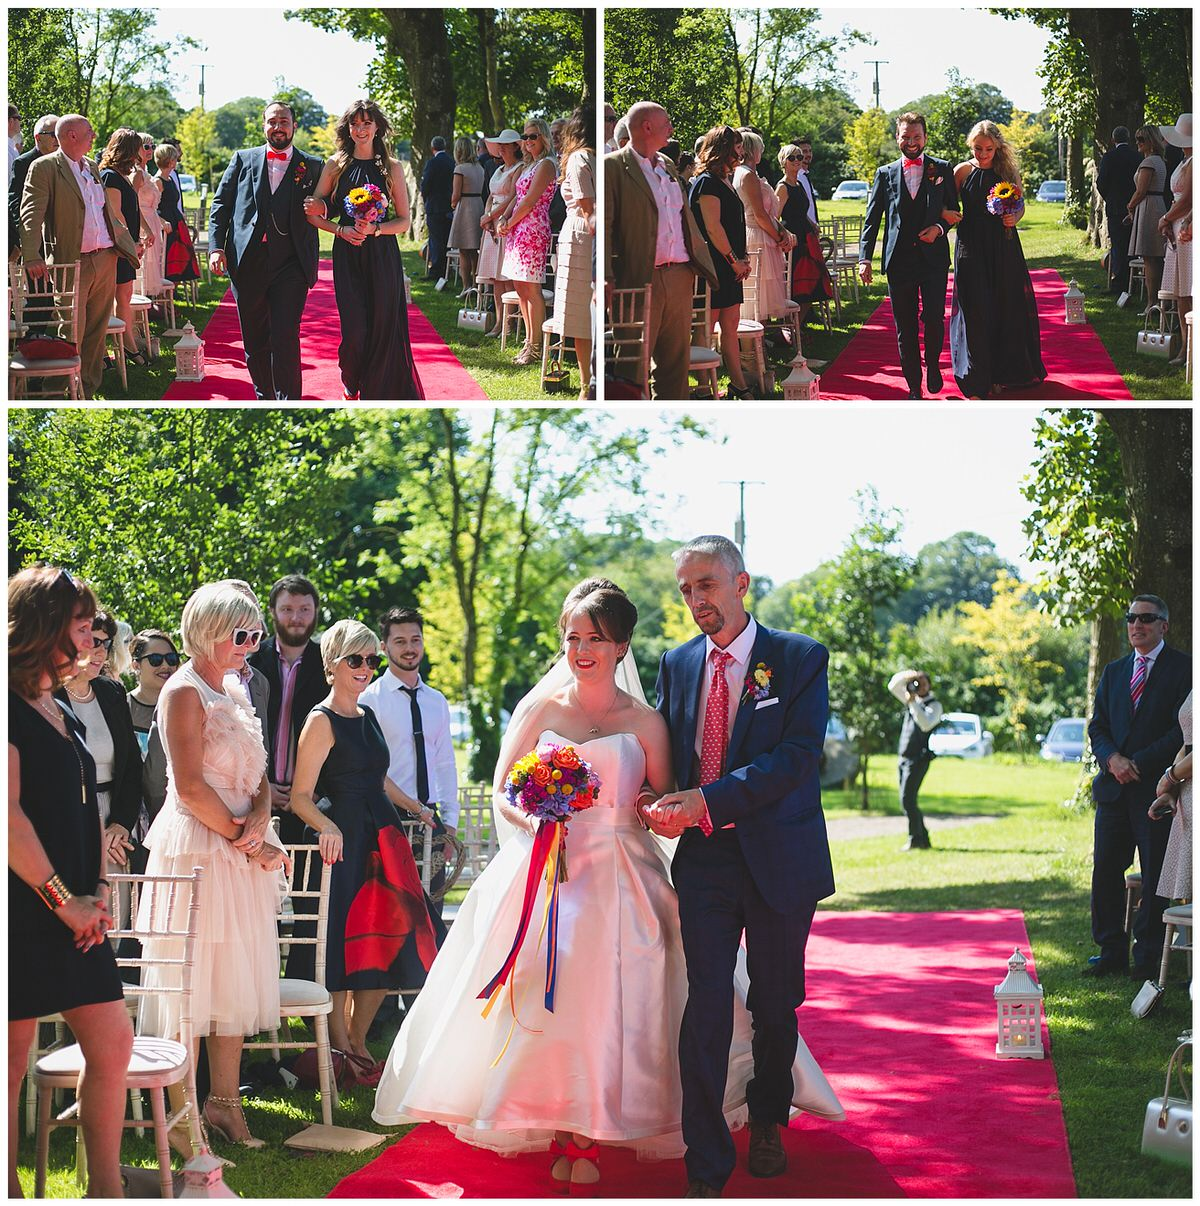 Bridal party walking down the red carpet aisle outside at Clonabreany House